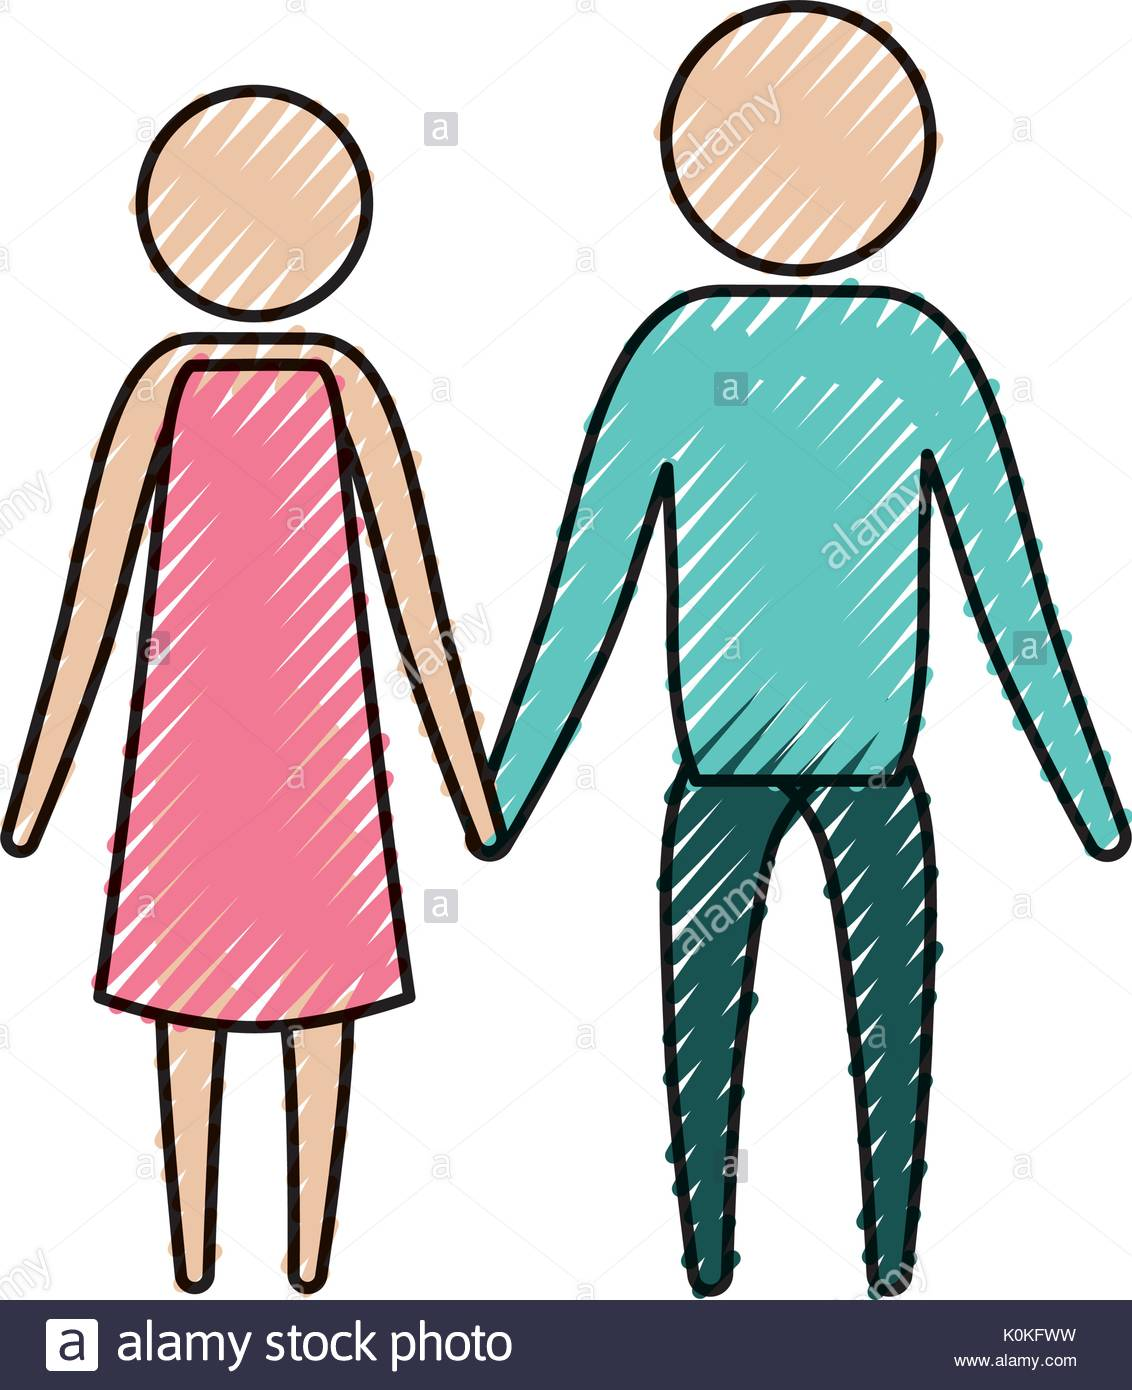 1132x1390 Color Crayon Silhouette Of Pictogram Couple Holding Hands